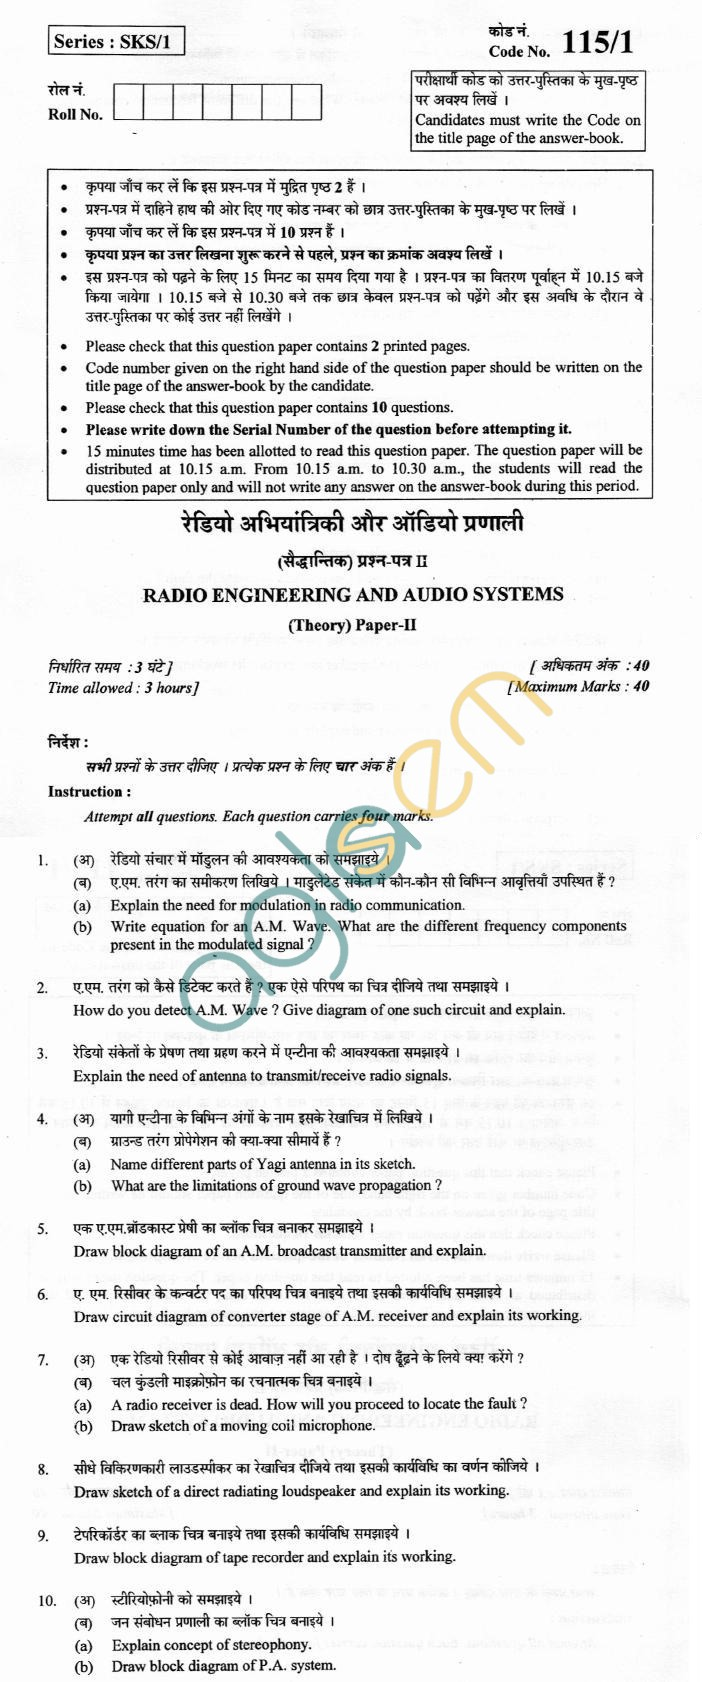 CBSE Board Exam 2013 Class XII Question Paper